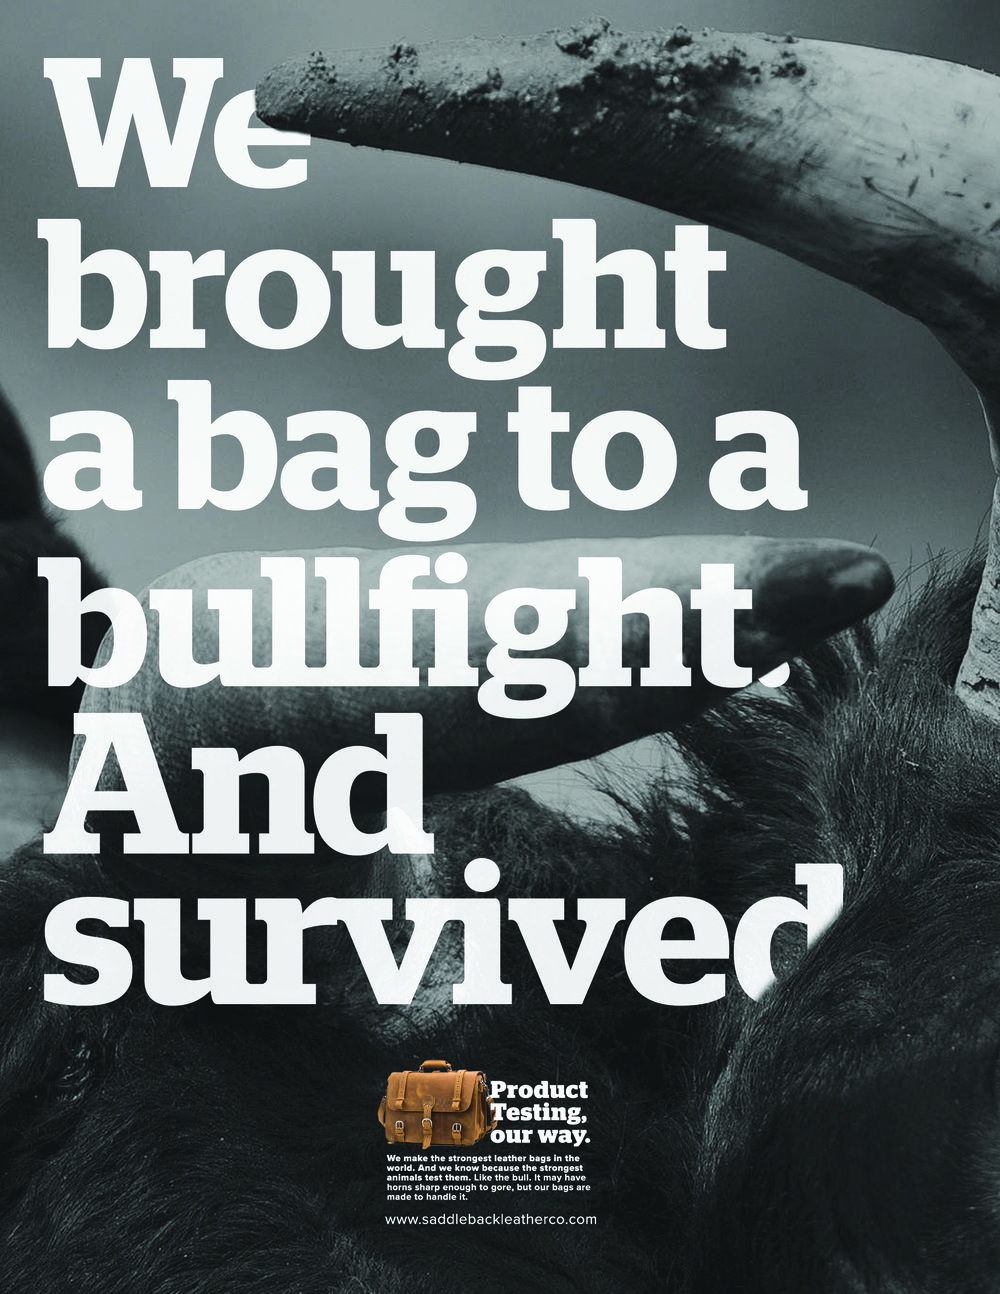 Body Copy:  We make the strongest leather bags in the world. And we know because the strongest animals test them. Like the bull. It may have horns sharp enough to gore, but our bags are made to handle it.